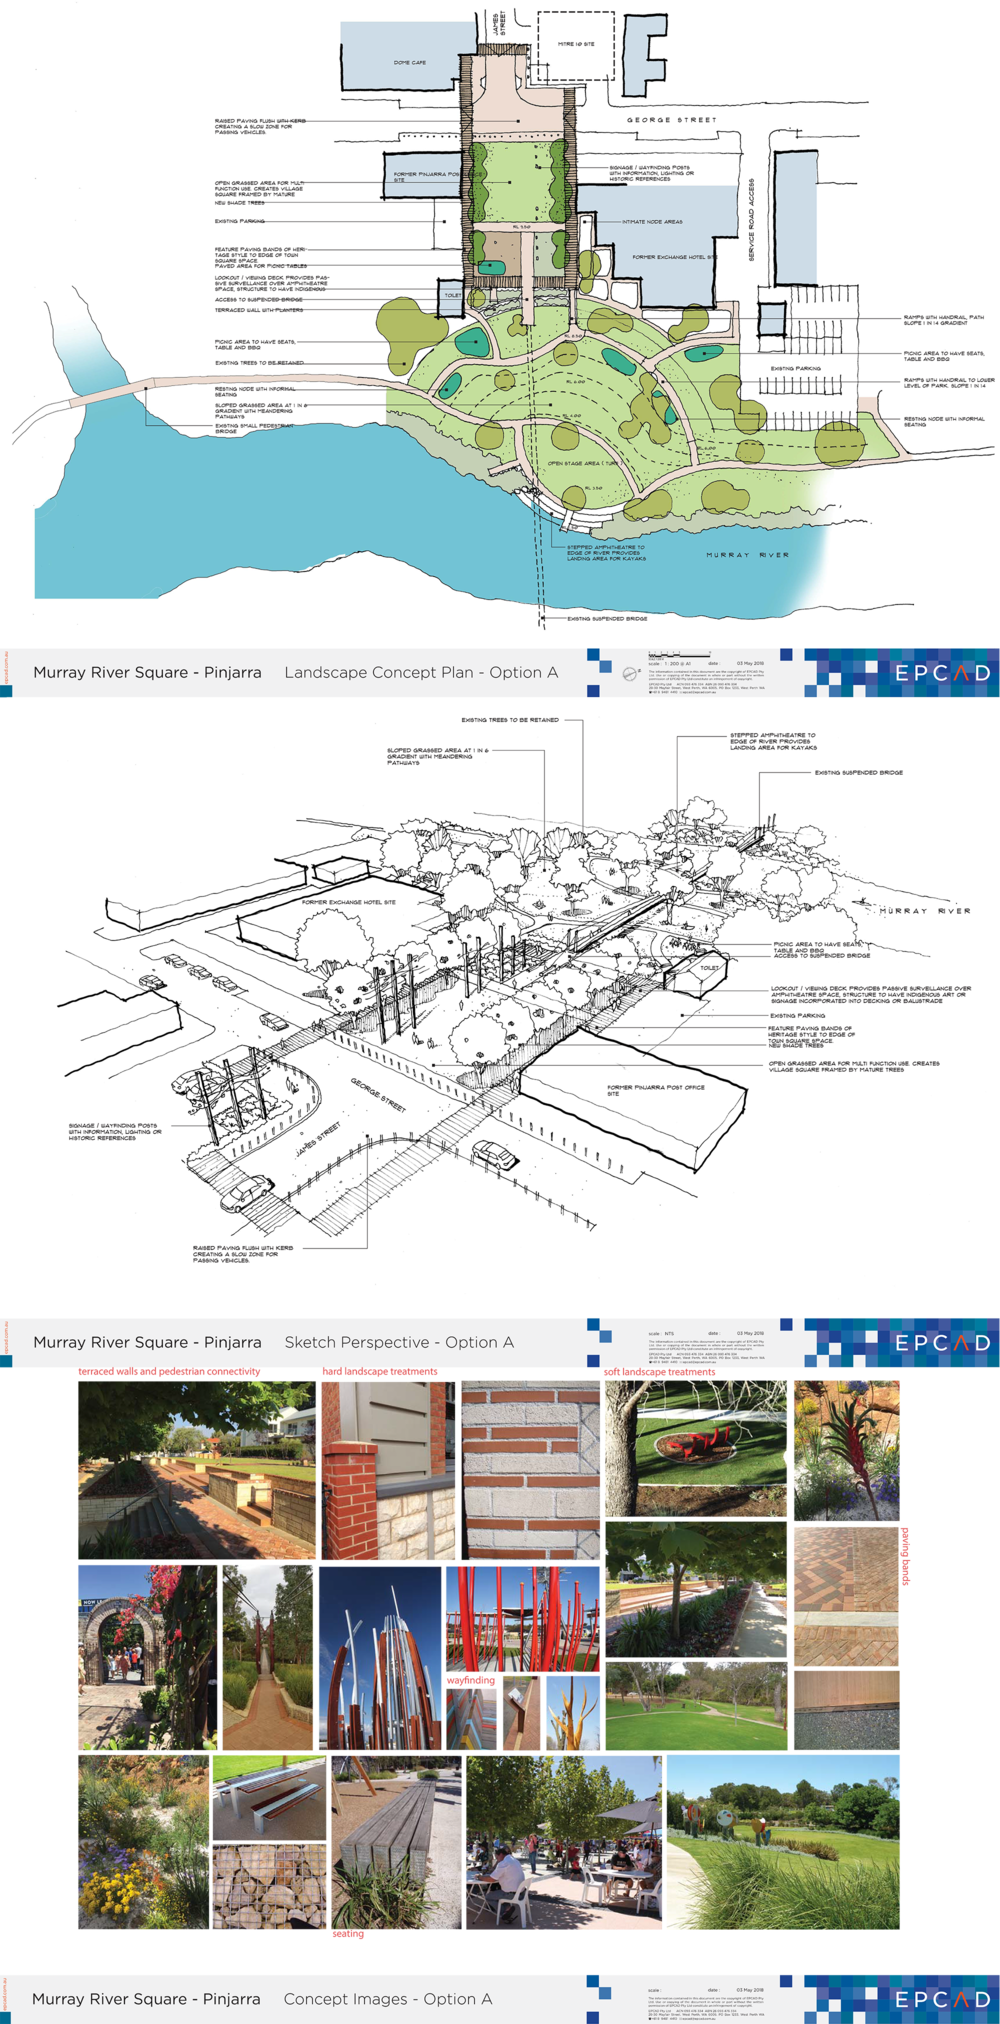 Murray River Site plan - perspective and images - Option A